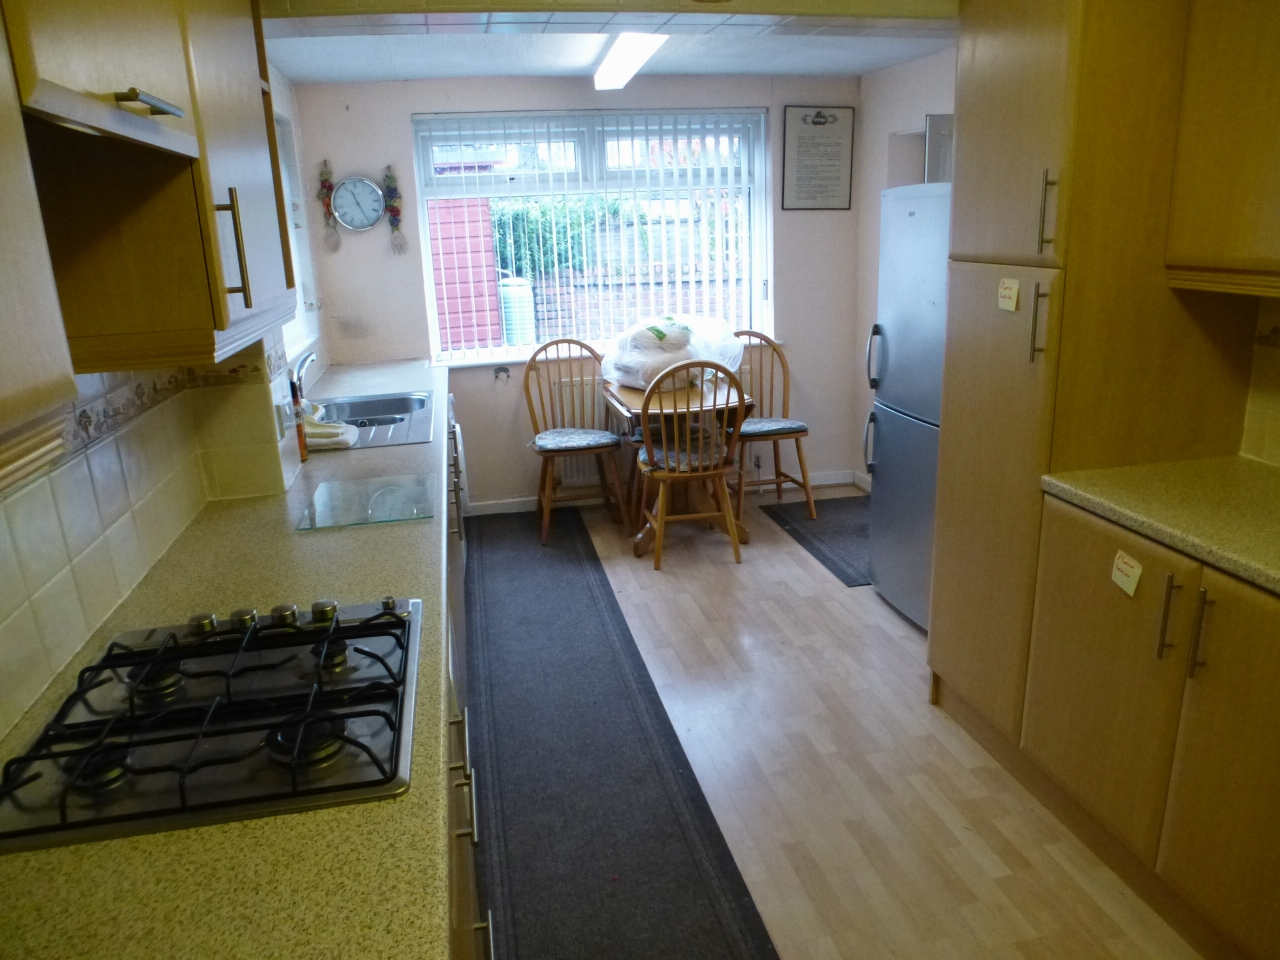 Image 1 of 3 of KITCHEN, on Accommodation Comprising for